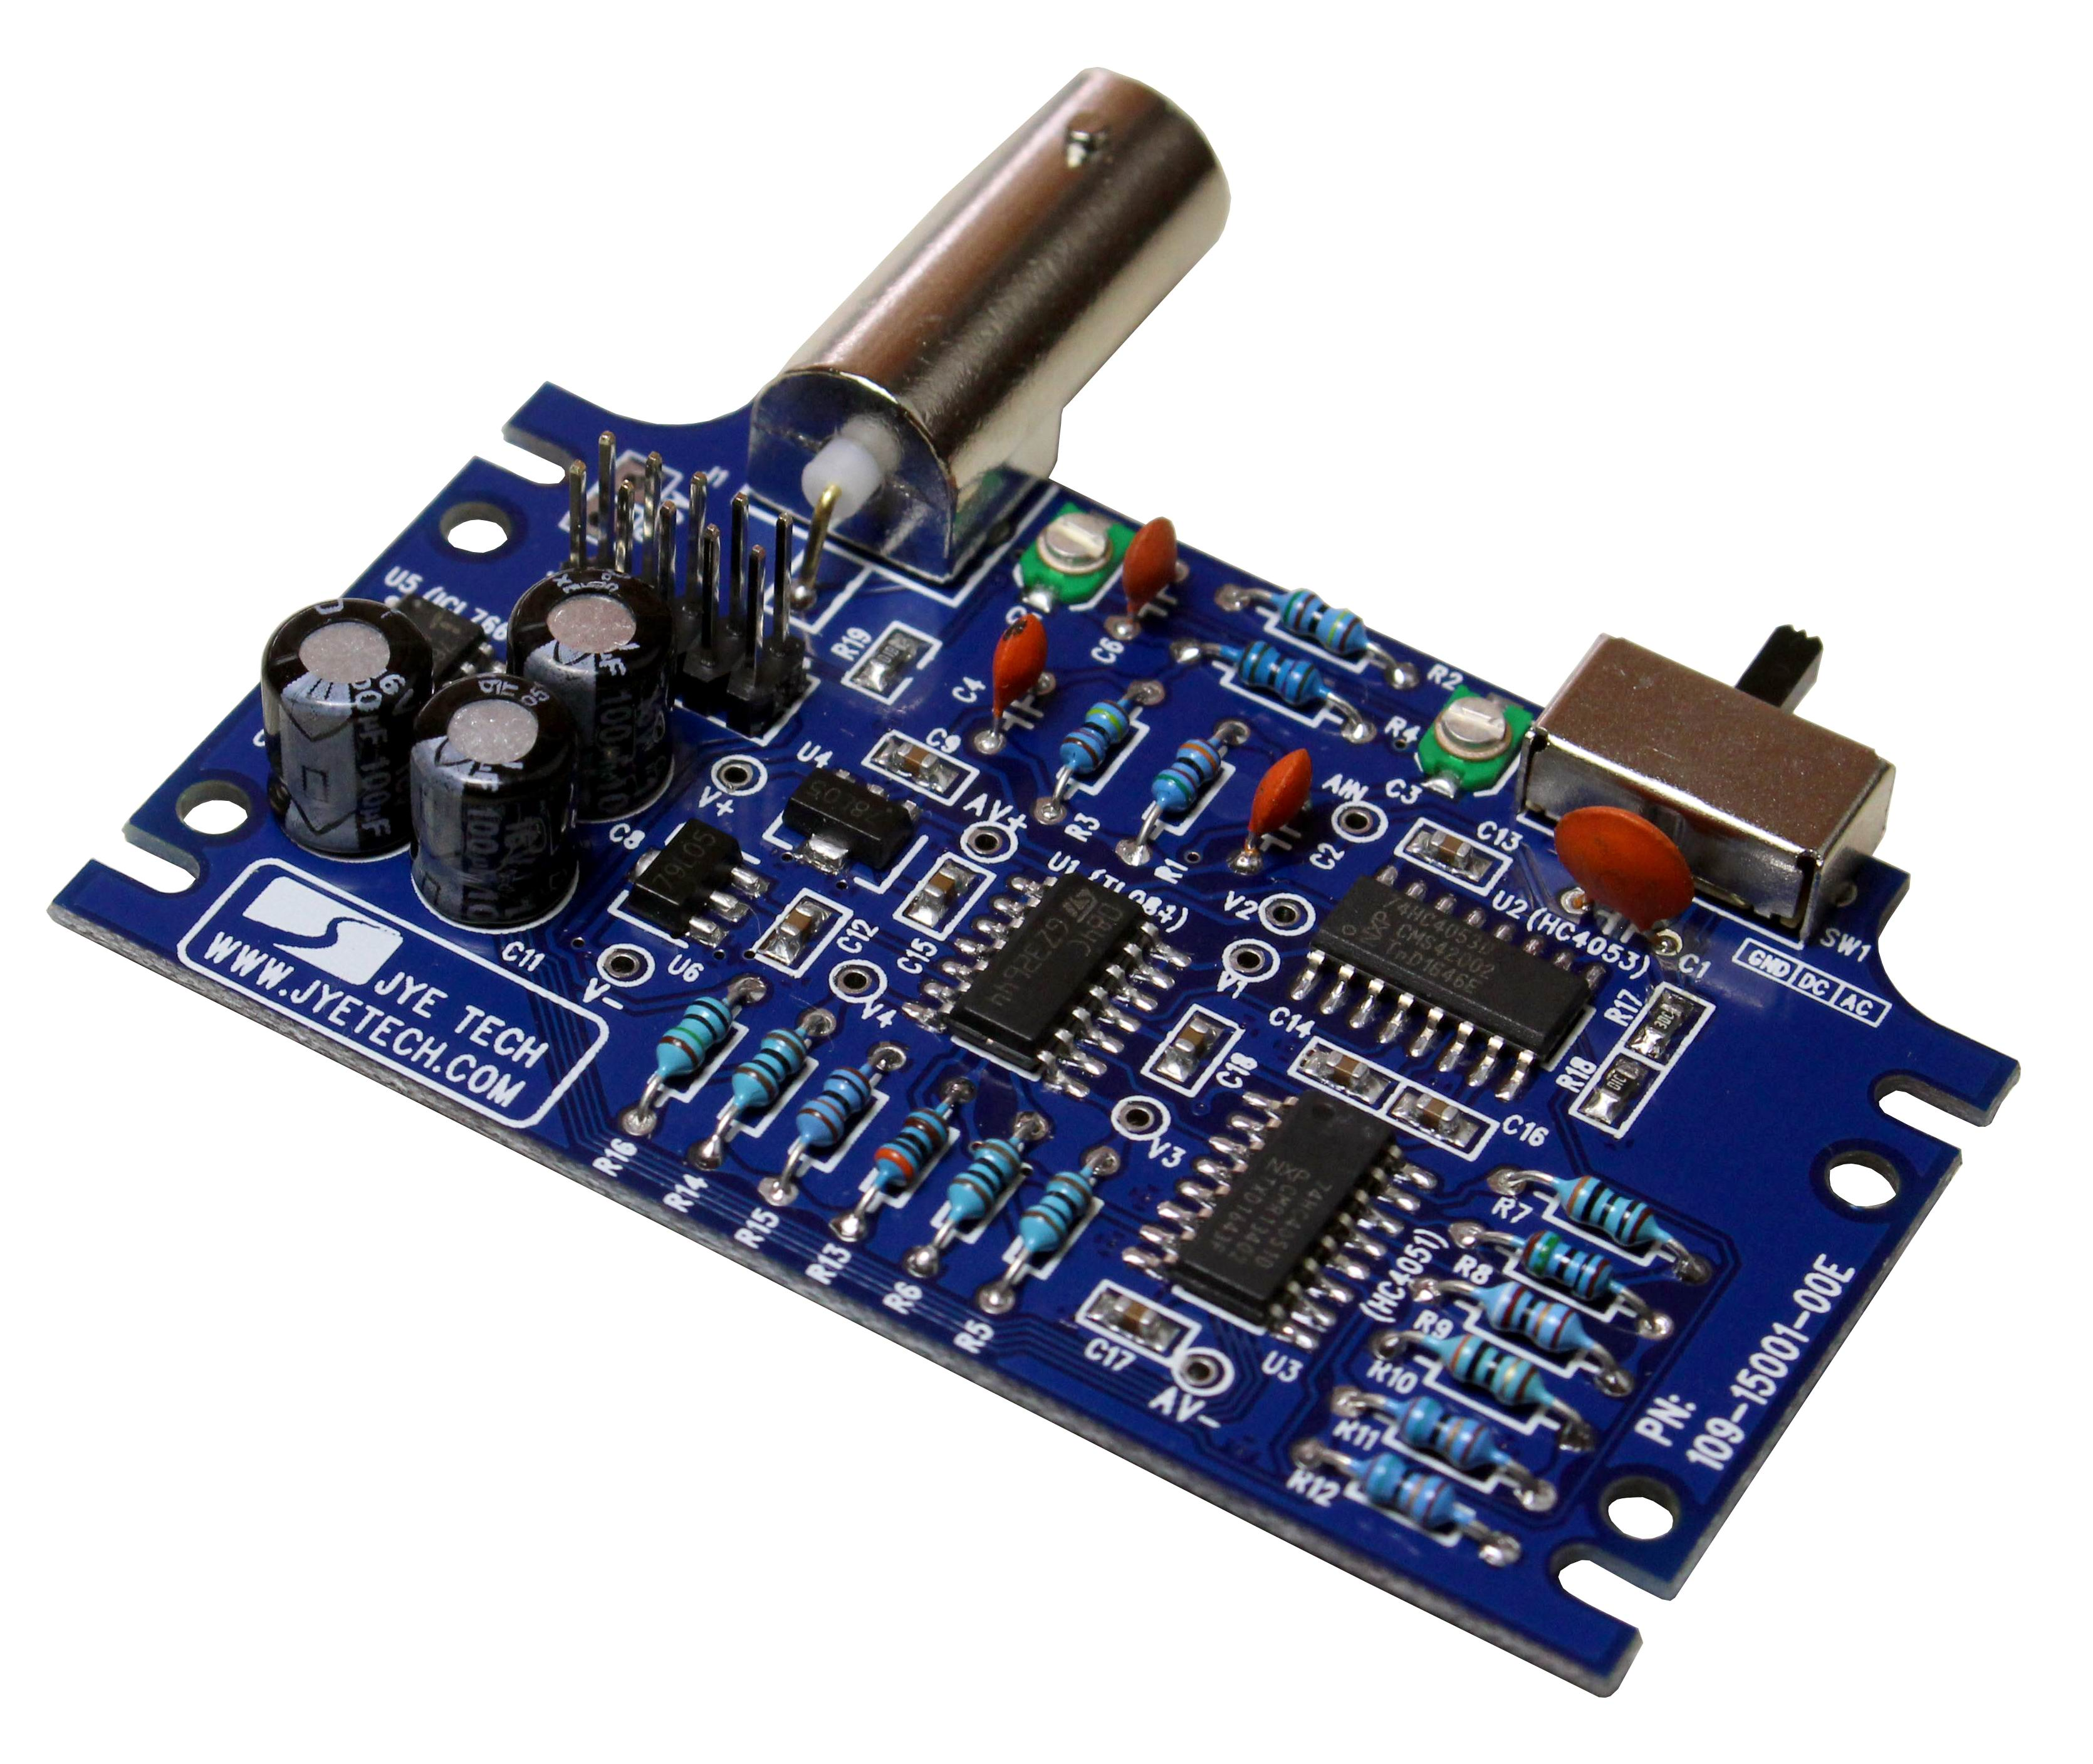 Jye Tech Diy Oscilloscopes Kits For Hobbyists Rotary Encoder Display Schematic Analog Board Changes